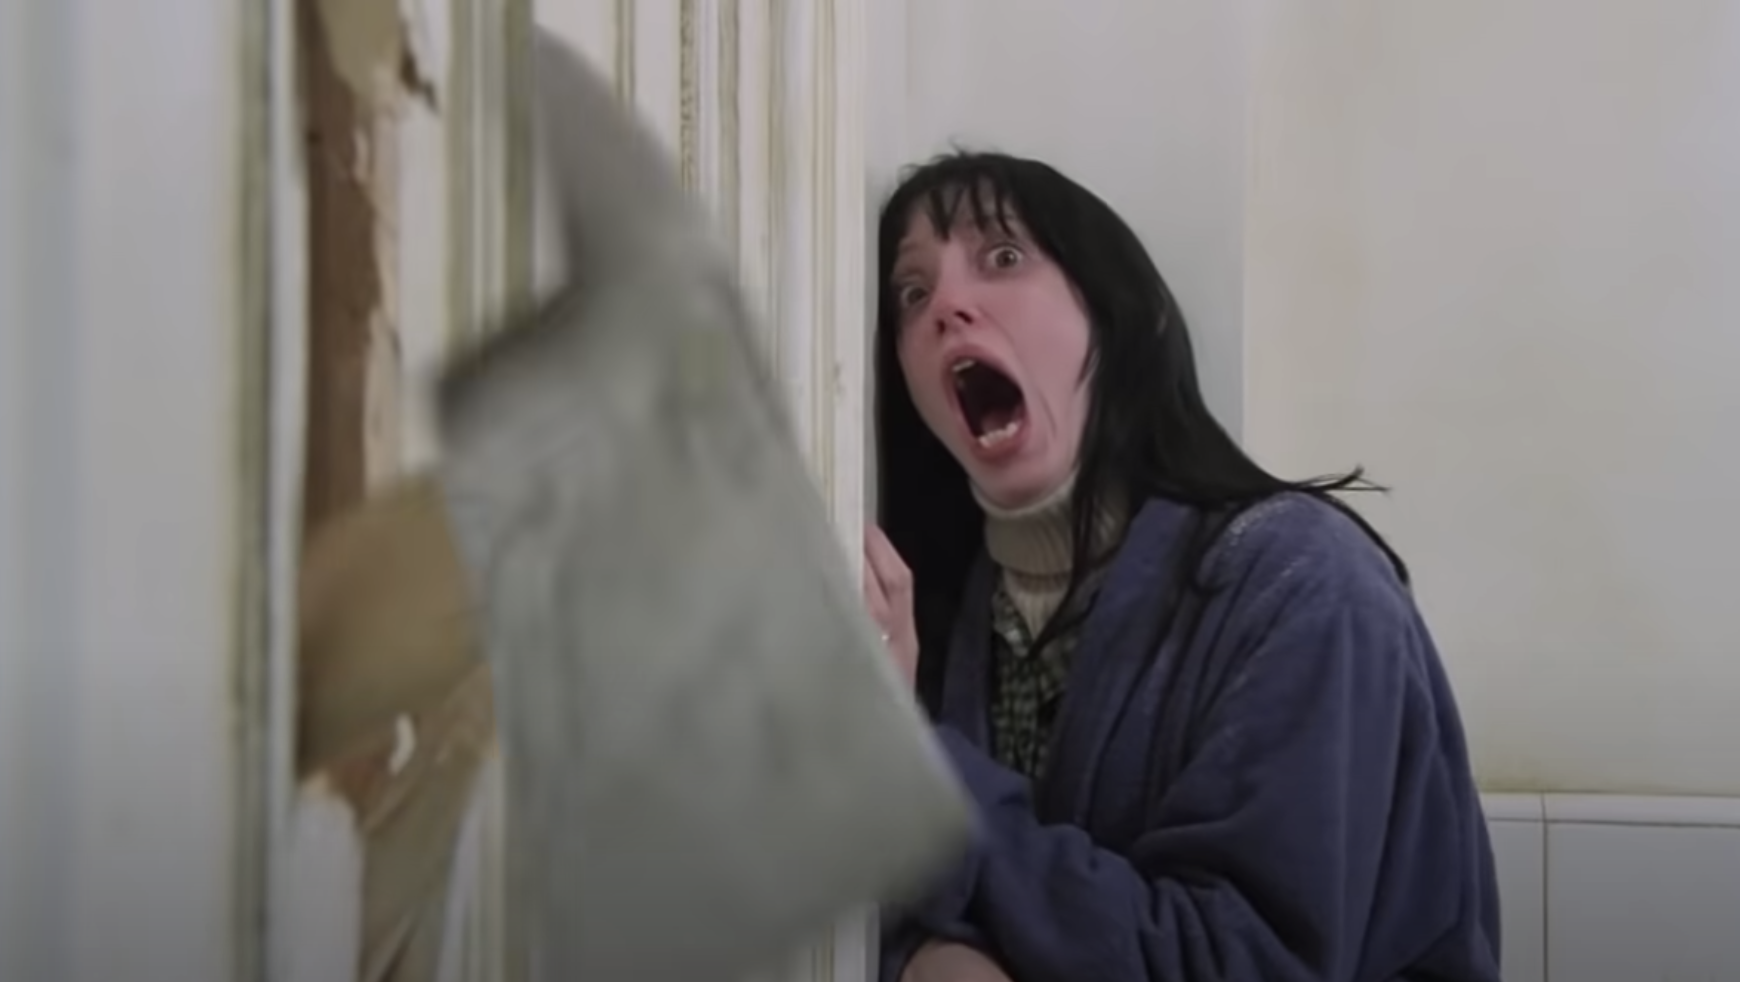 Shelley screaming as Jack uses an axe to break down the door of the bathroom she is in in The Shining